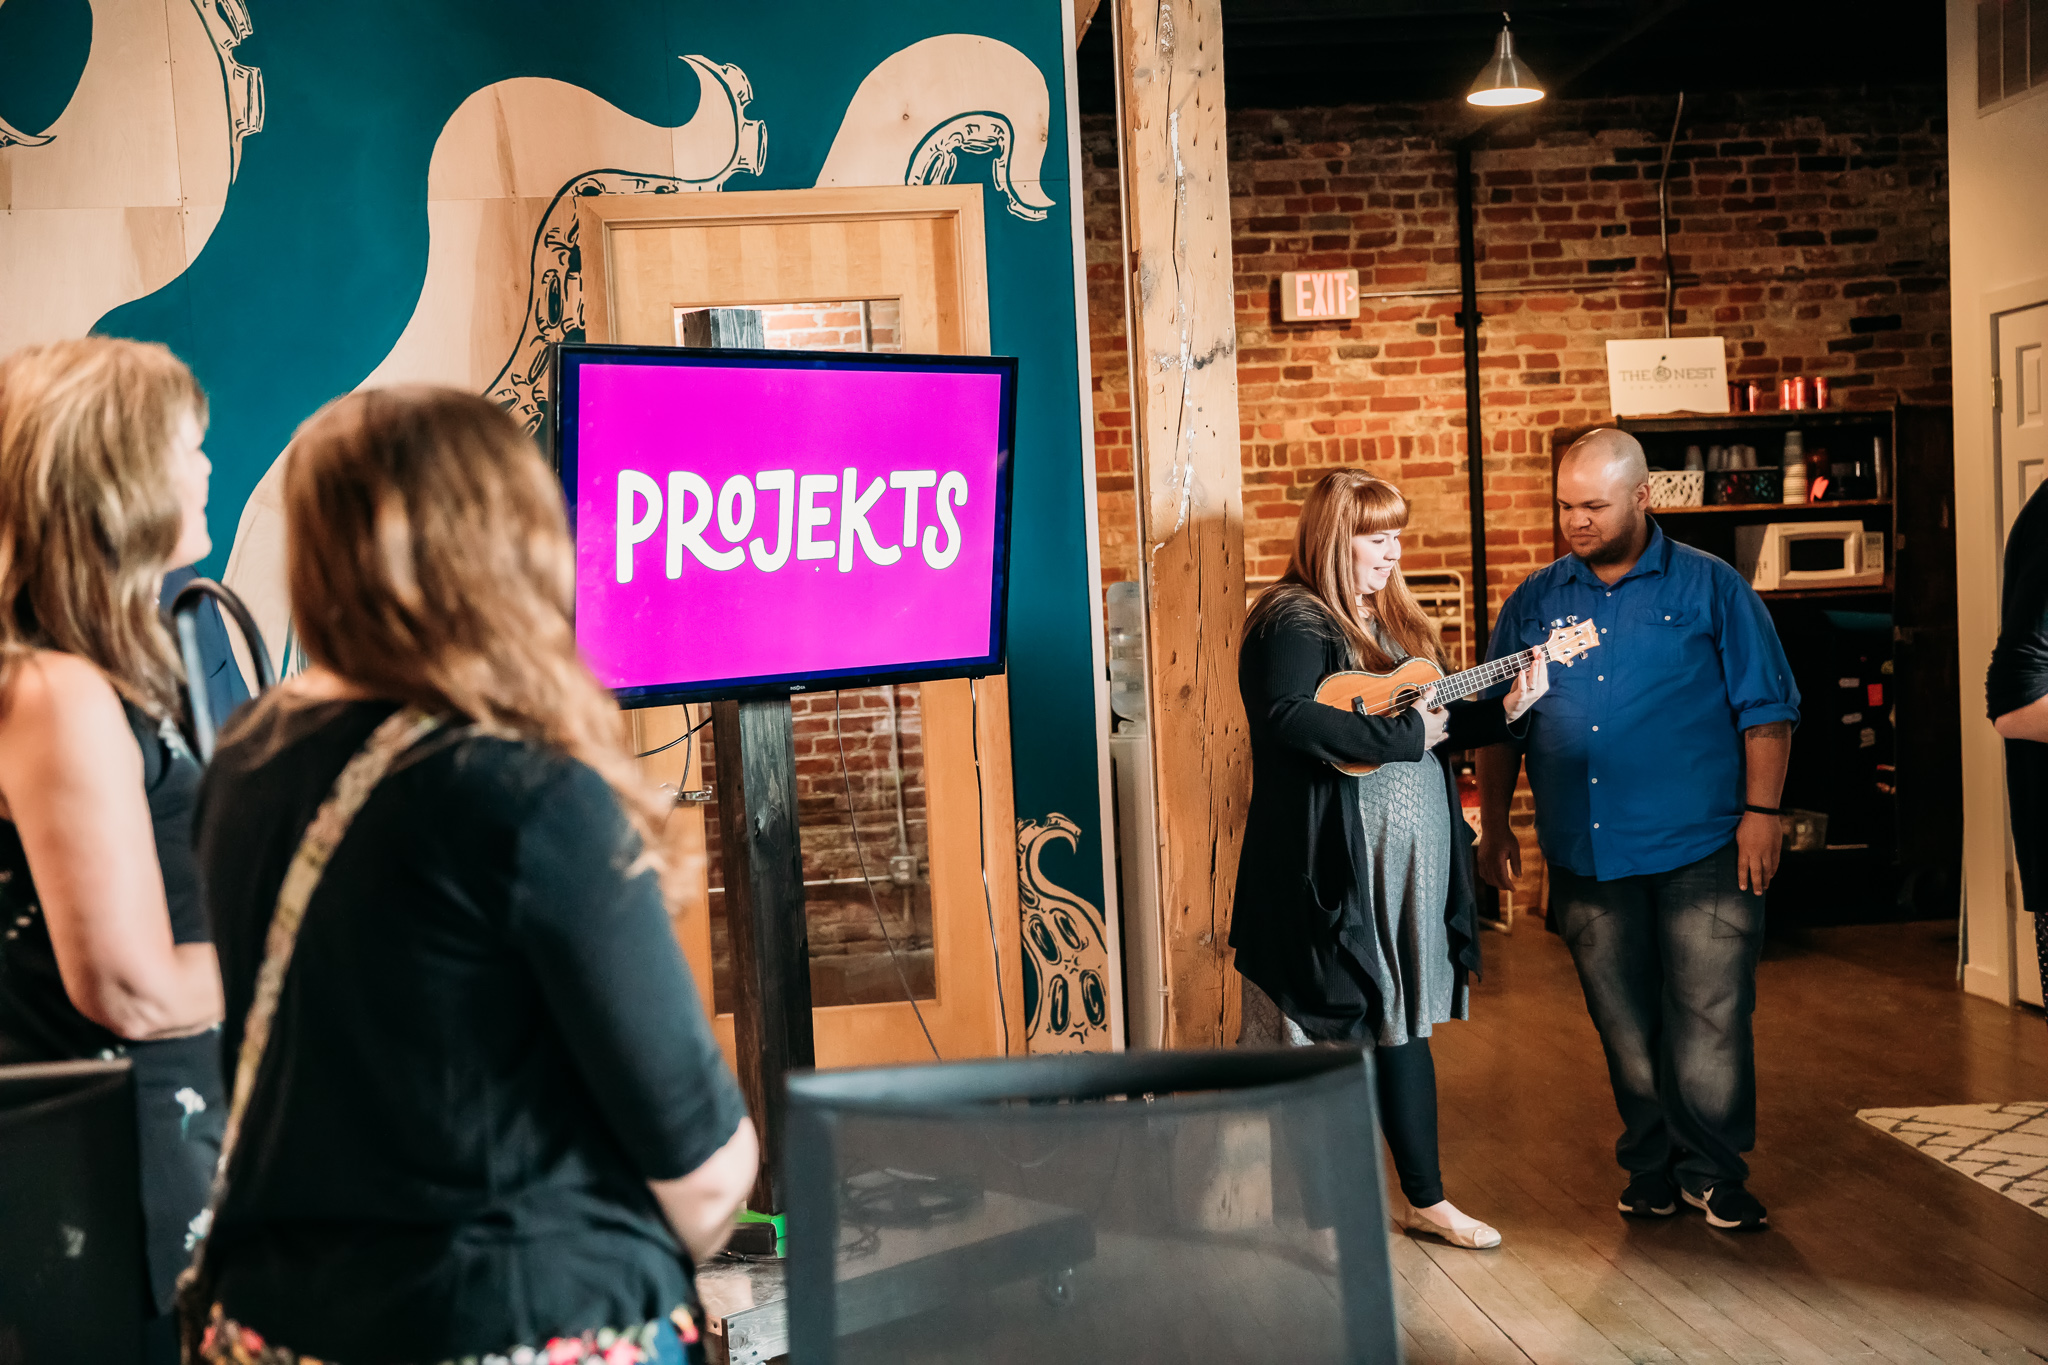 On Thursday, April 25th at  Lettering Works Third Anniversary  celebration,  Projekts  were introduced alongside their new logo.